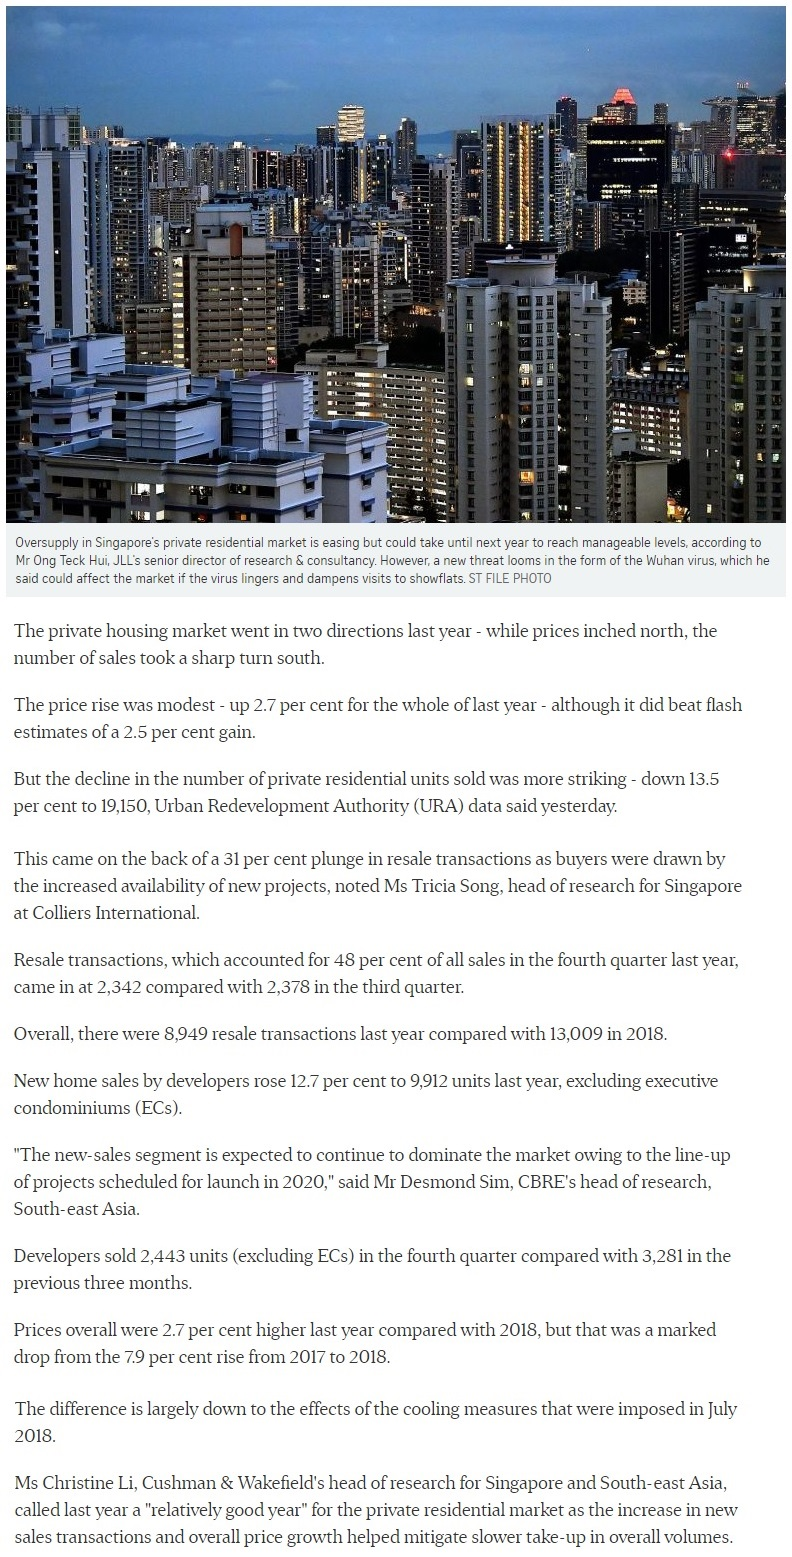 The Line @ Tanjong Rhu - Singapore private home prices inch up 2.7% for 2019 Part 1